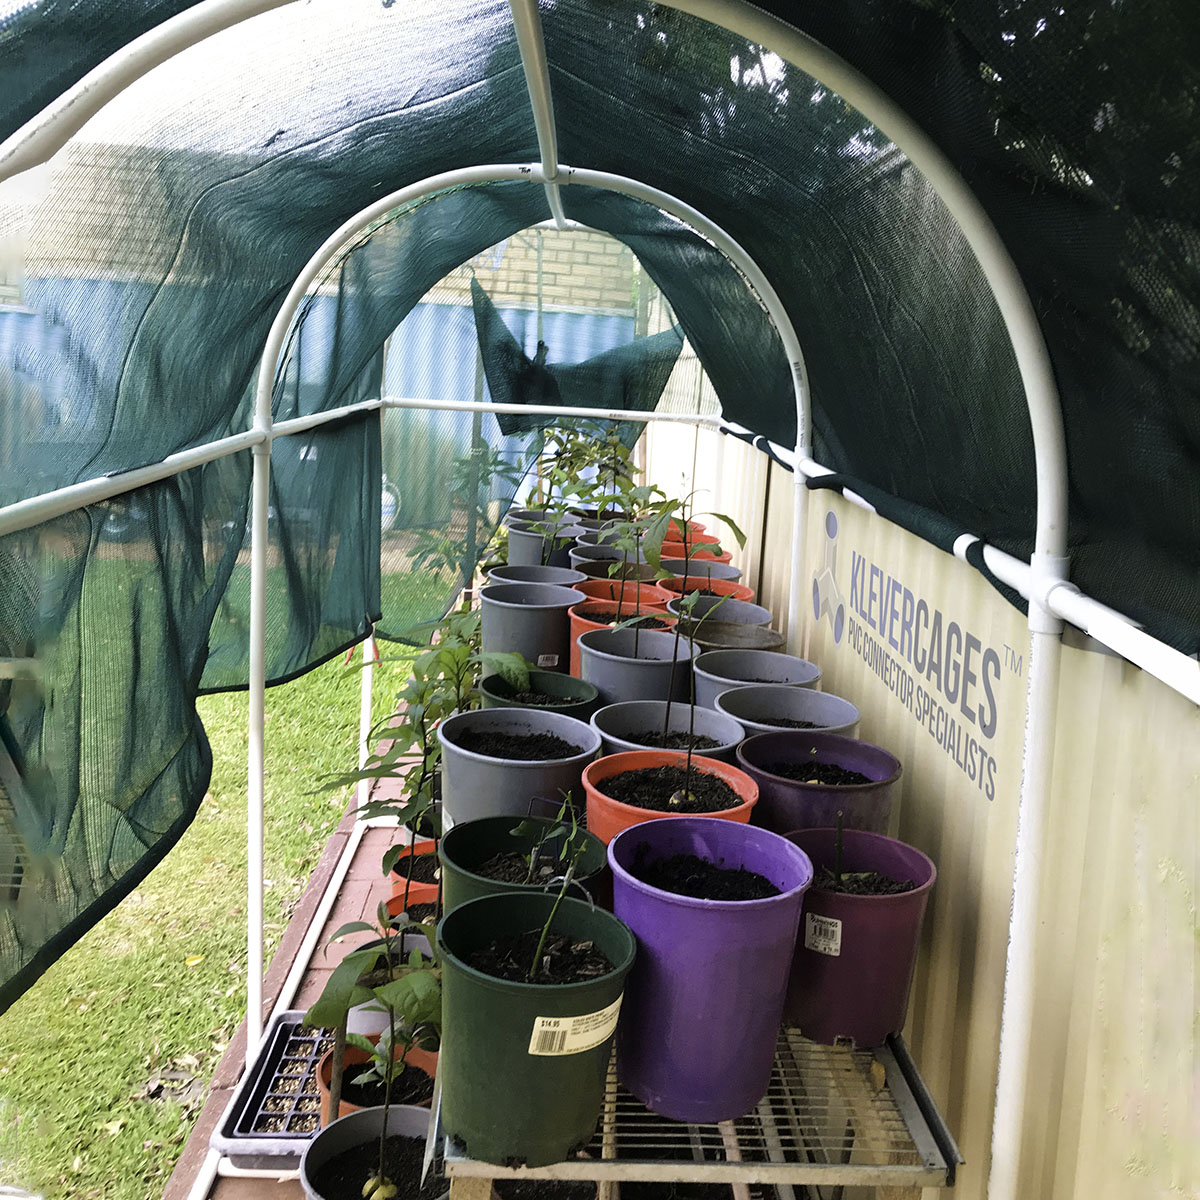 Arched shadehouse frame built with PVC pipe and connectors from Klever Cages. 20mm crosses, 3 ways, tees and snapclamps protecting pot plants with green shadecloth up against a fence